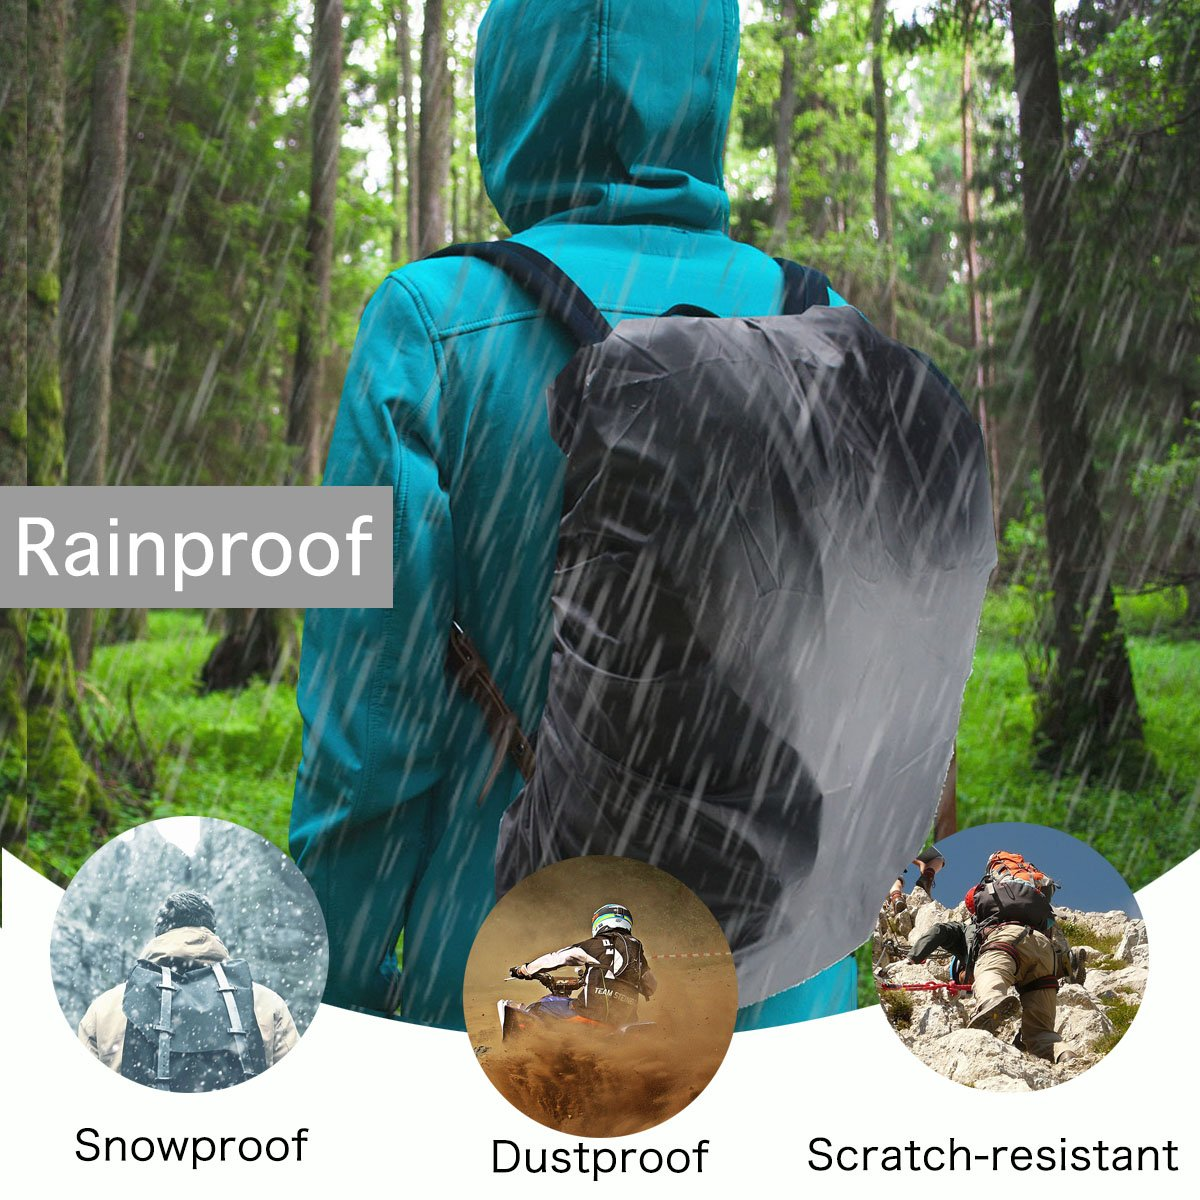 Frelaxy Waterproof Backpack Rain Cover for (15-90L), Upgraded Design & Silver Coated, for Hiking, Camping, Traveling, Outdoor Activities (Army Green, M) by Frelaxy (Image #7)